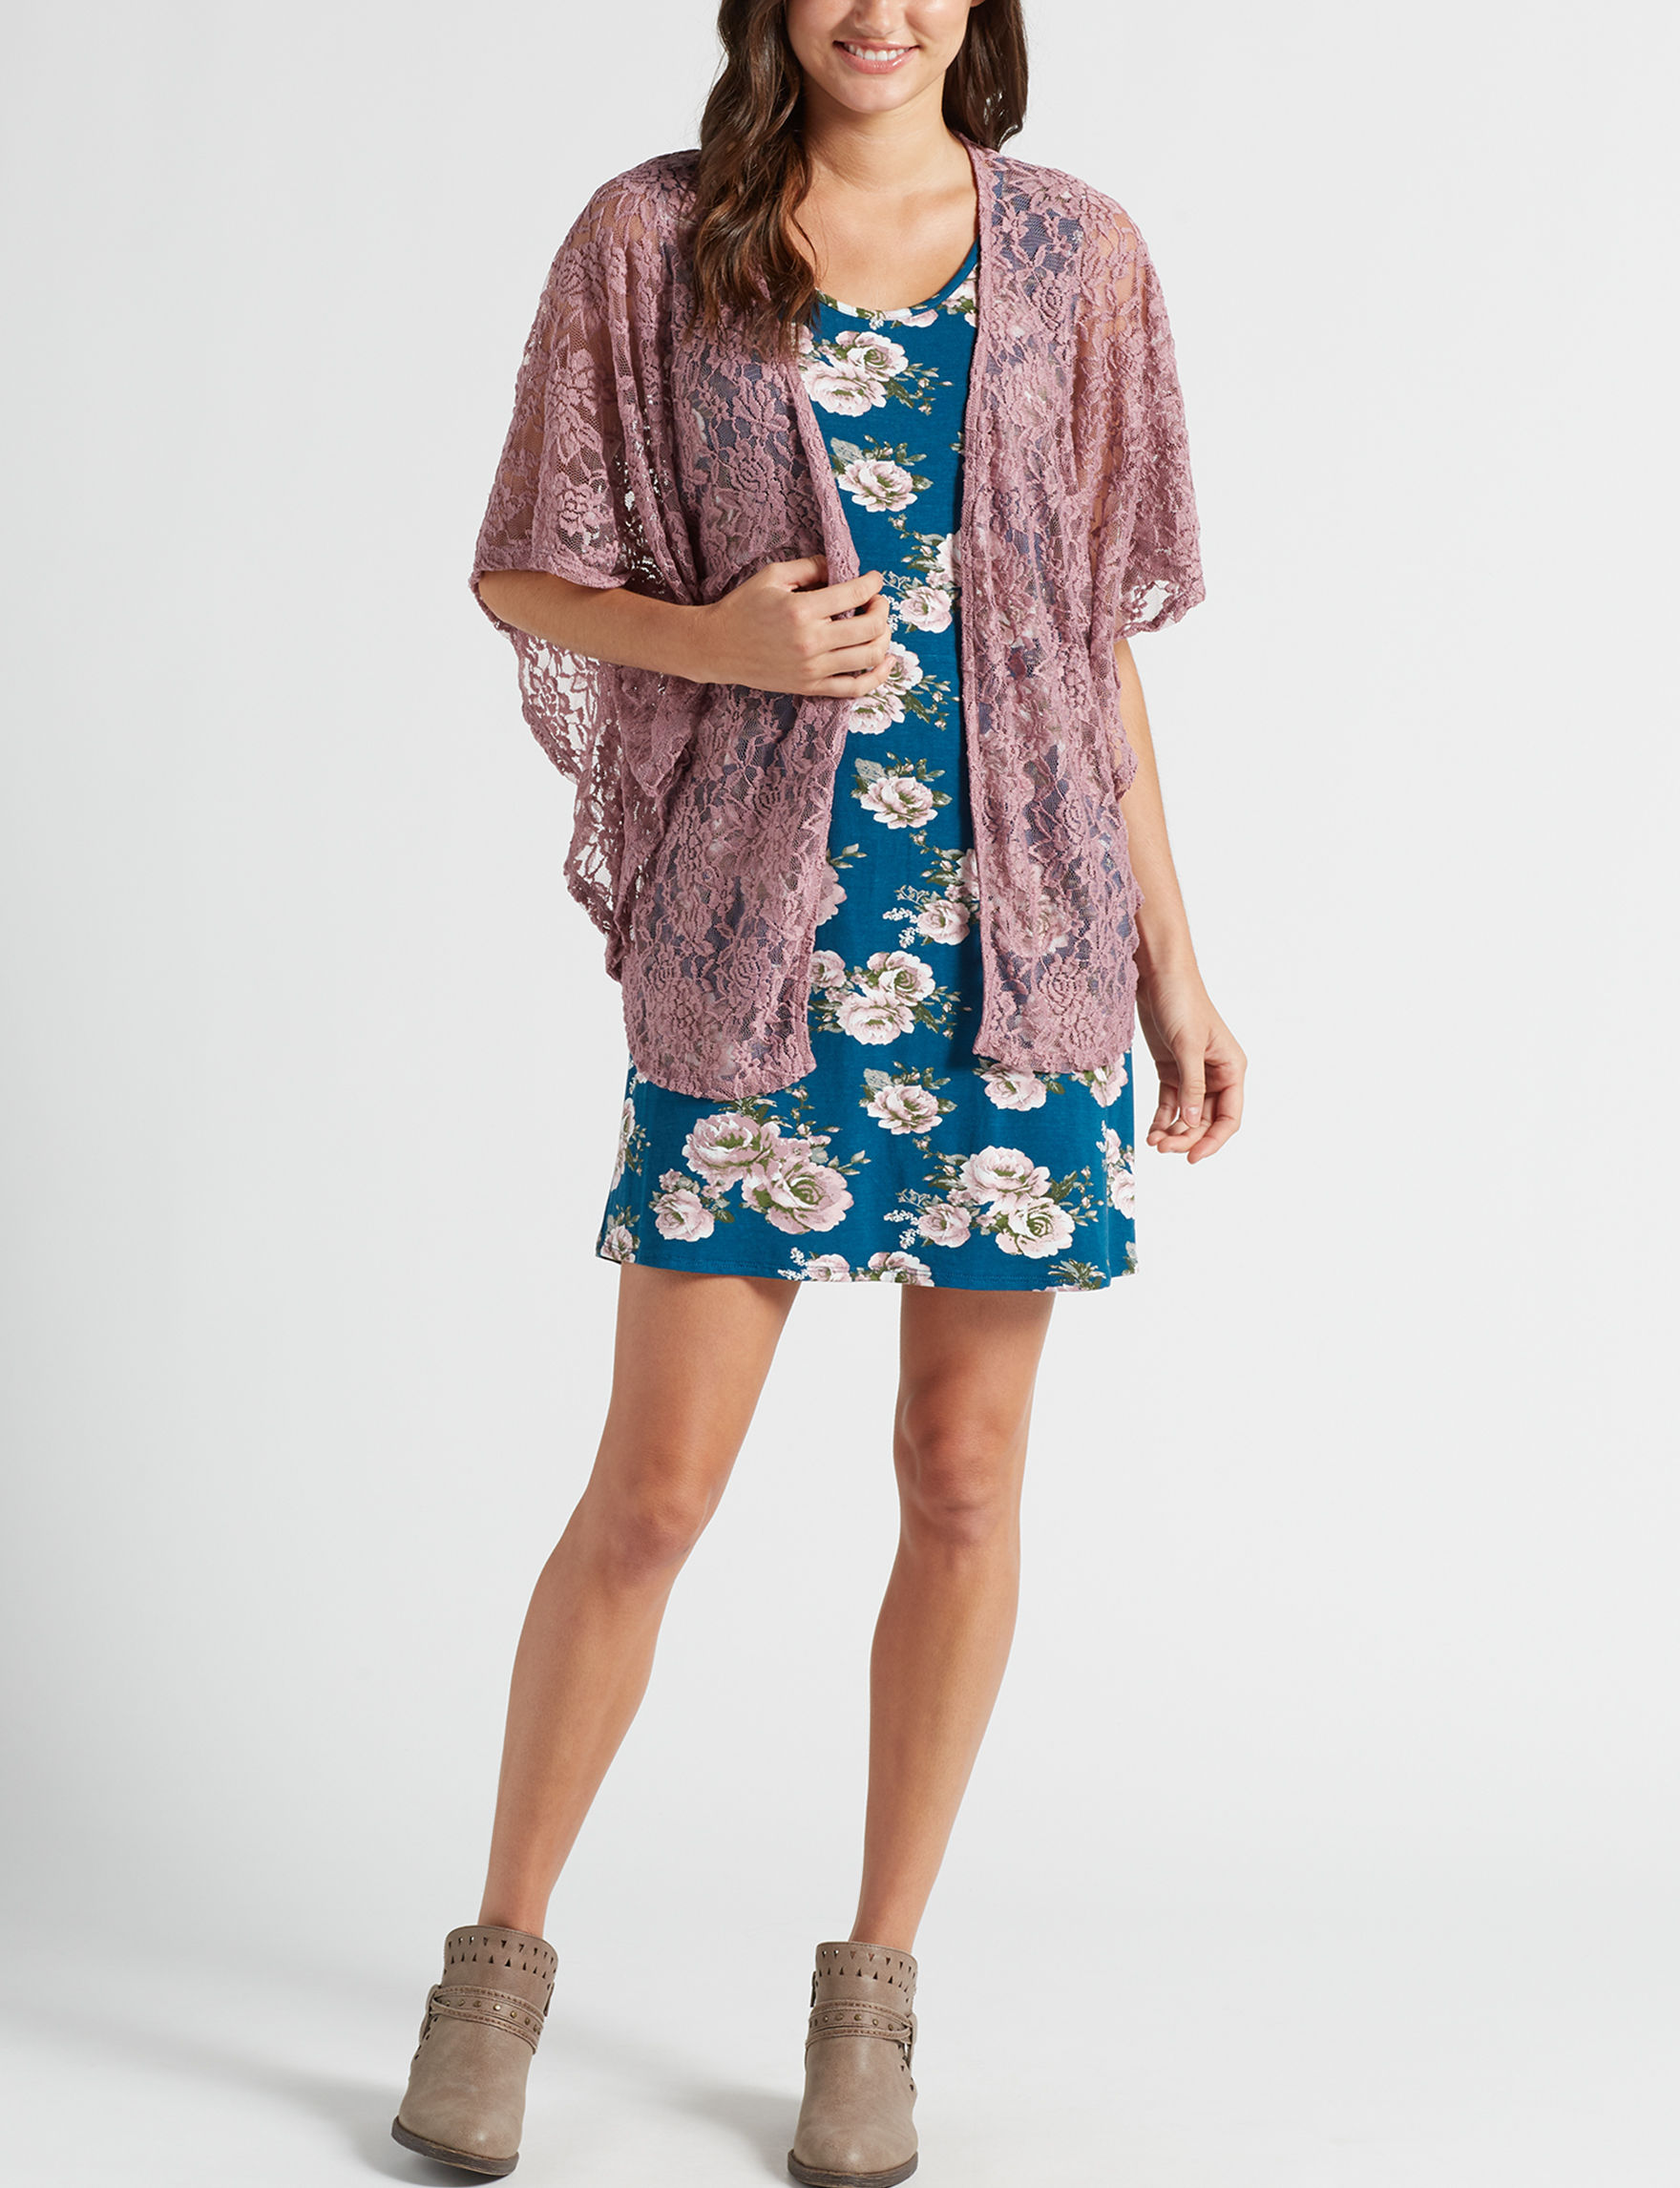 Wishful Park Teal Floral Everyday & Casual